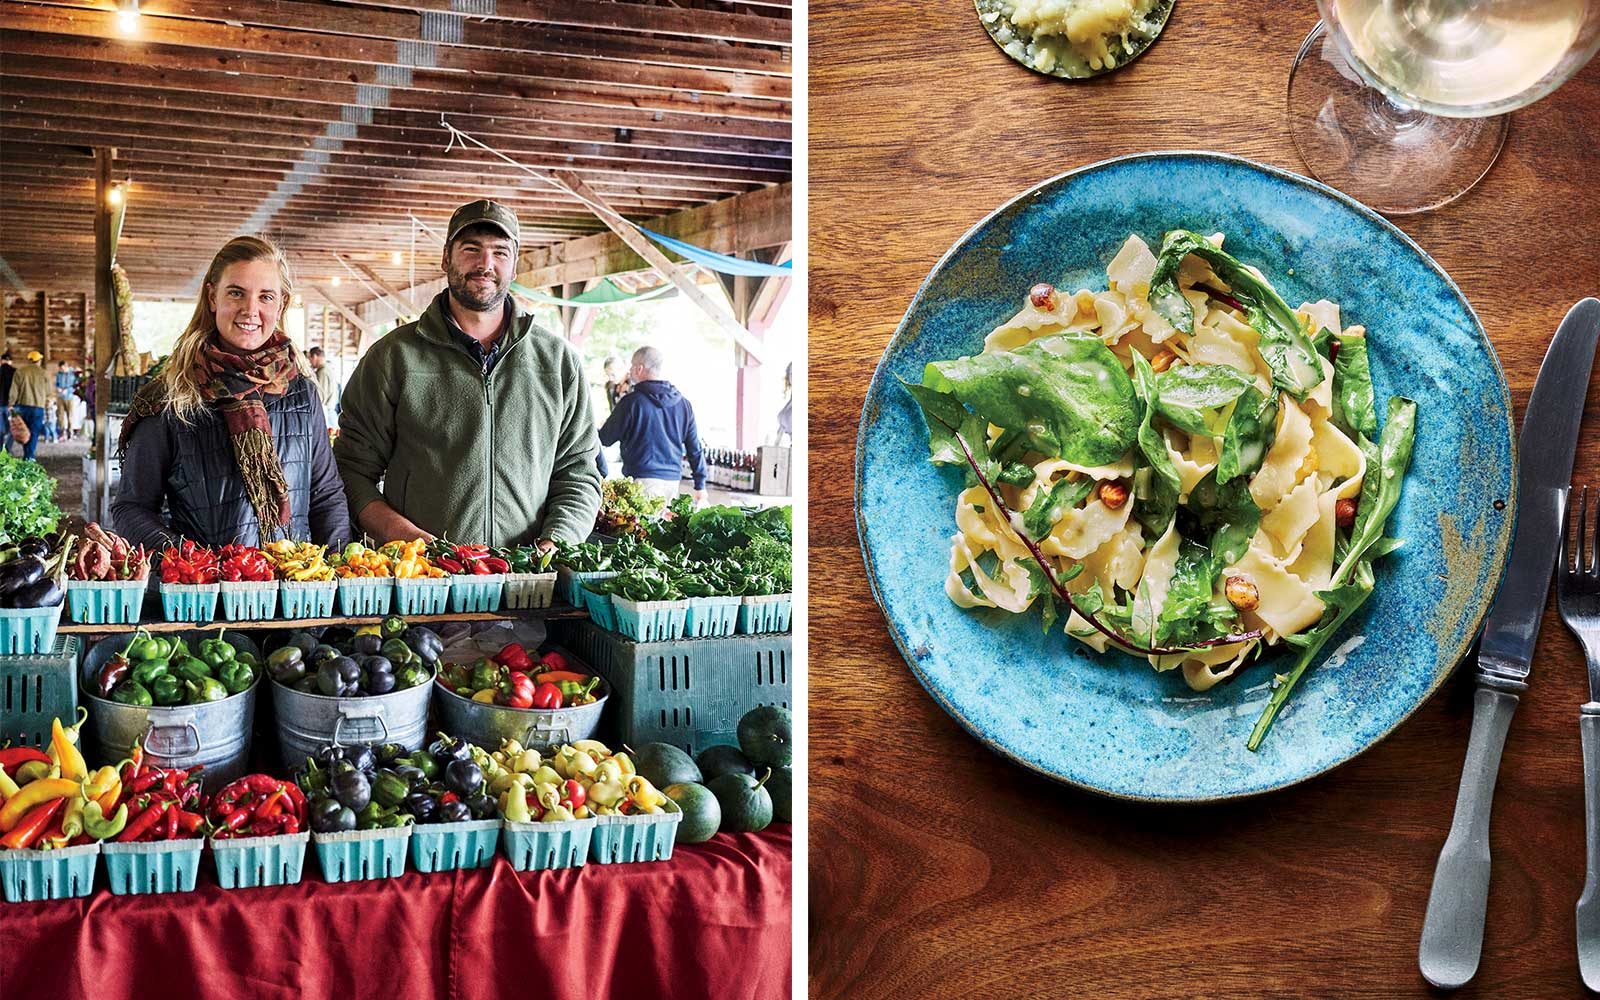 Markets and Restaurants in Upstate New York